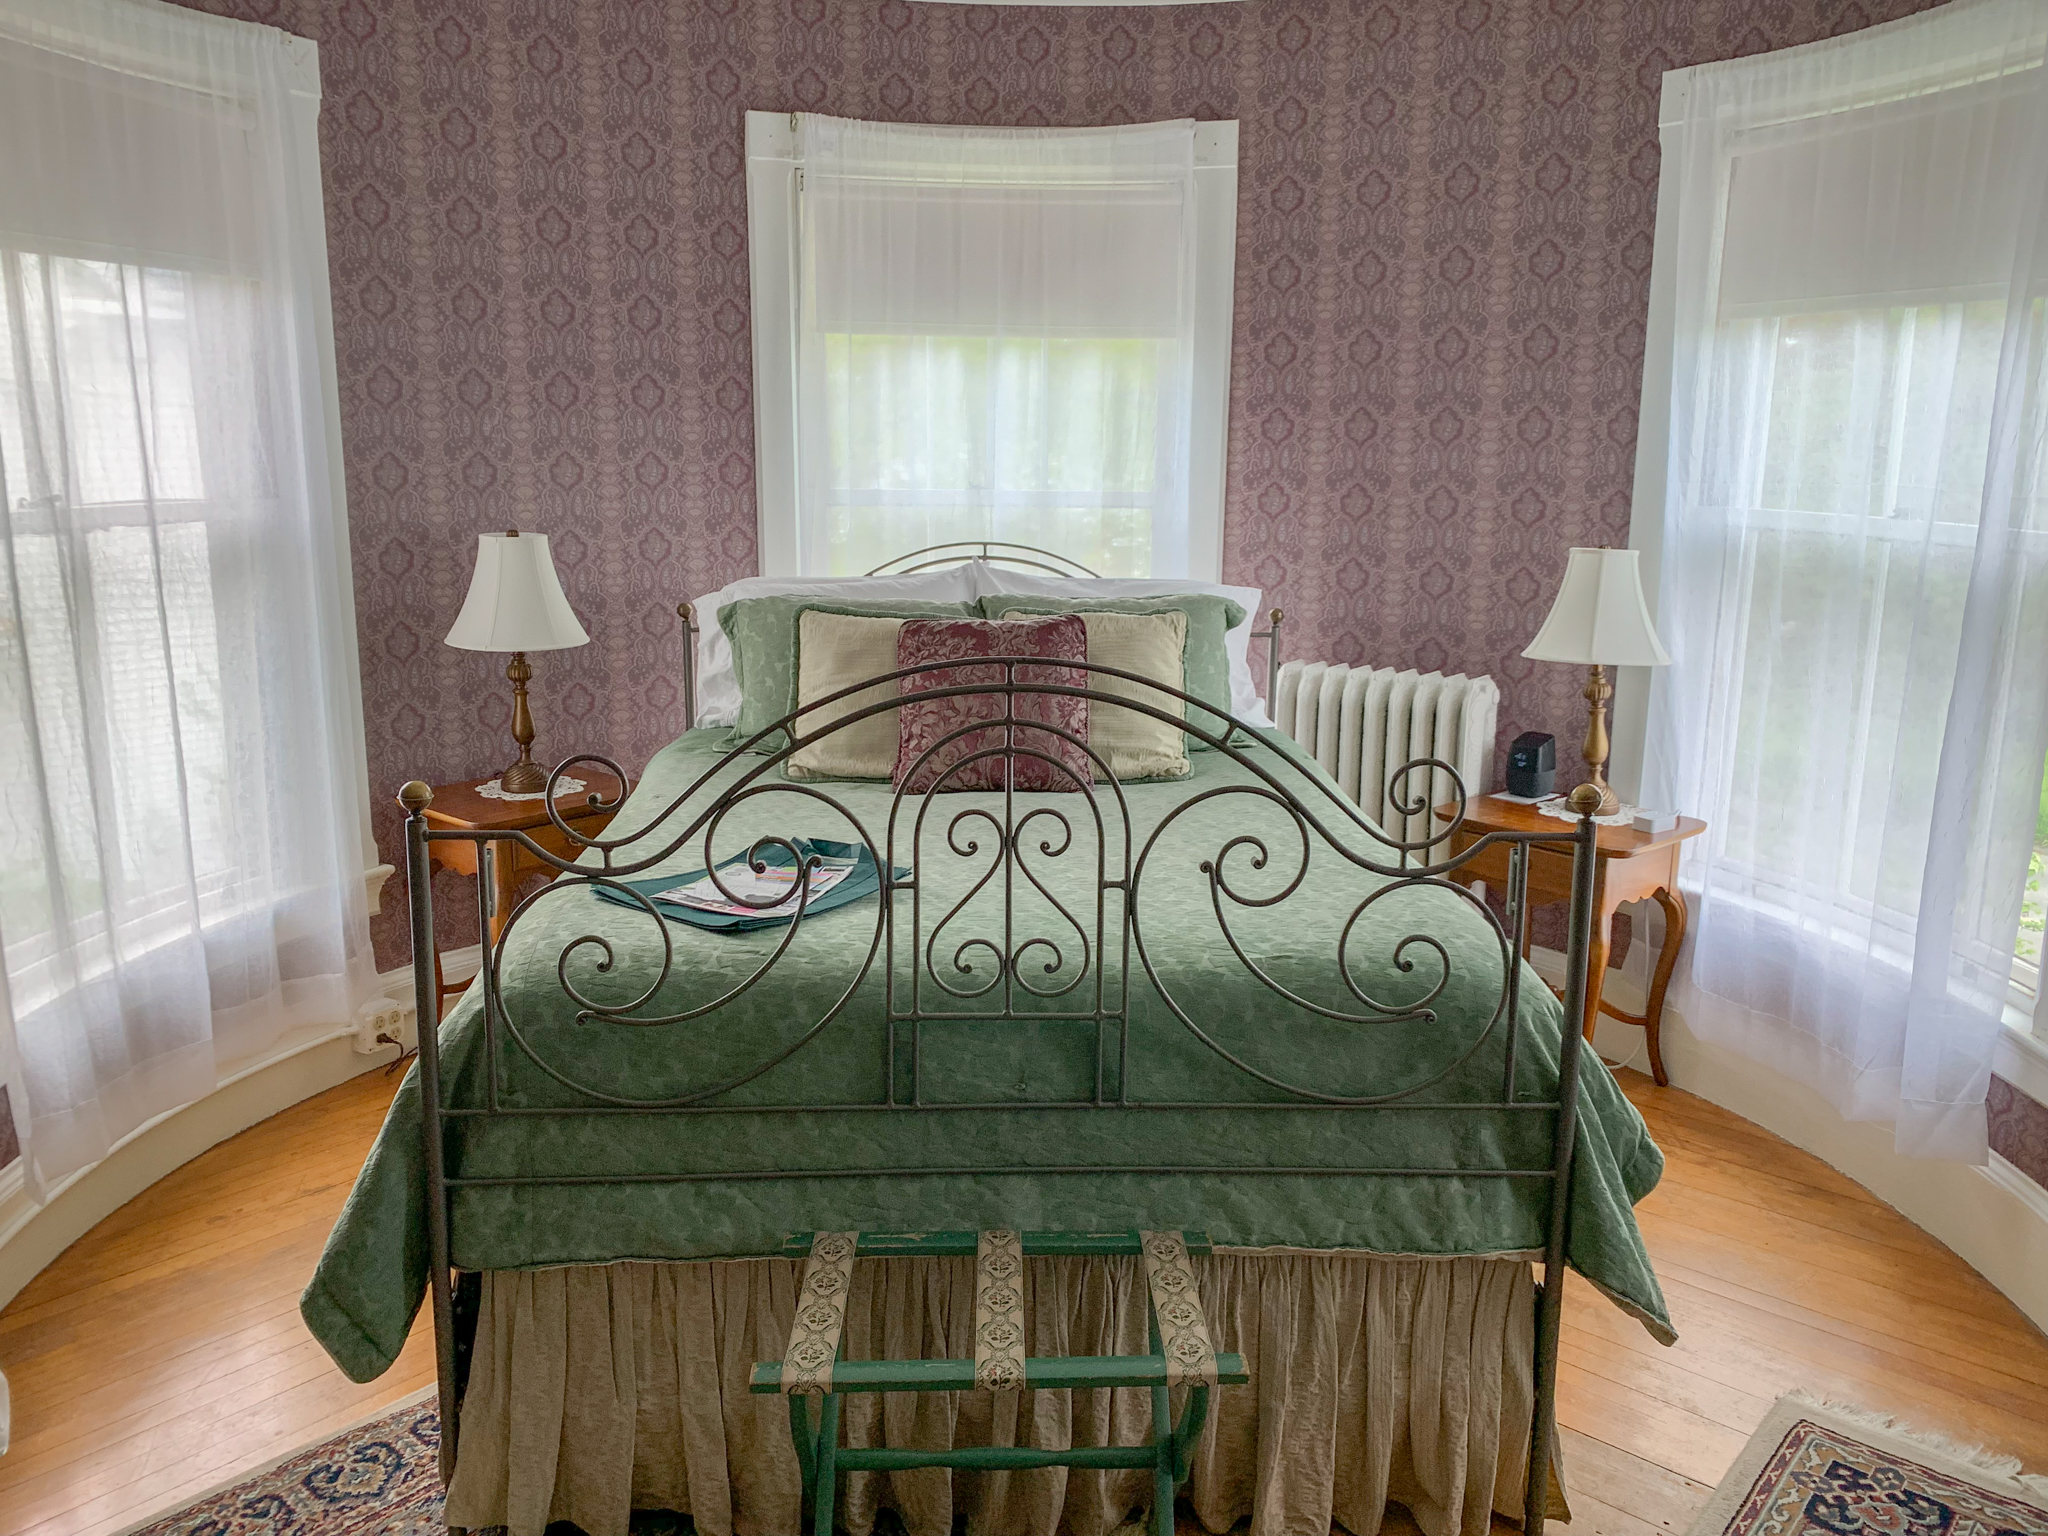 Turret - Romance abounds in our largest guest room featuring luxury appointments and classic Victorian style. Located on the second floor.Room Features: Luxury queen bedded room, sitting area, full large en-suite bathroom with clawfoot tub and separate shower.